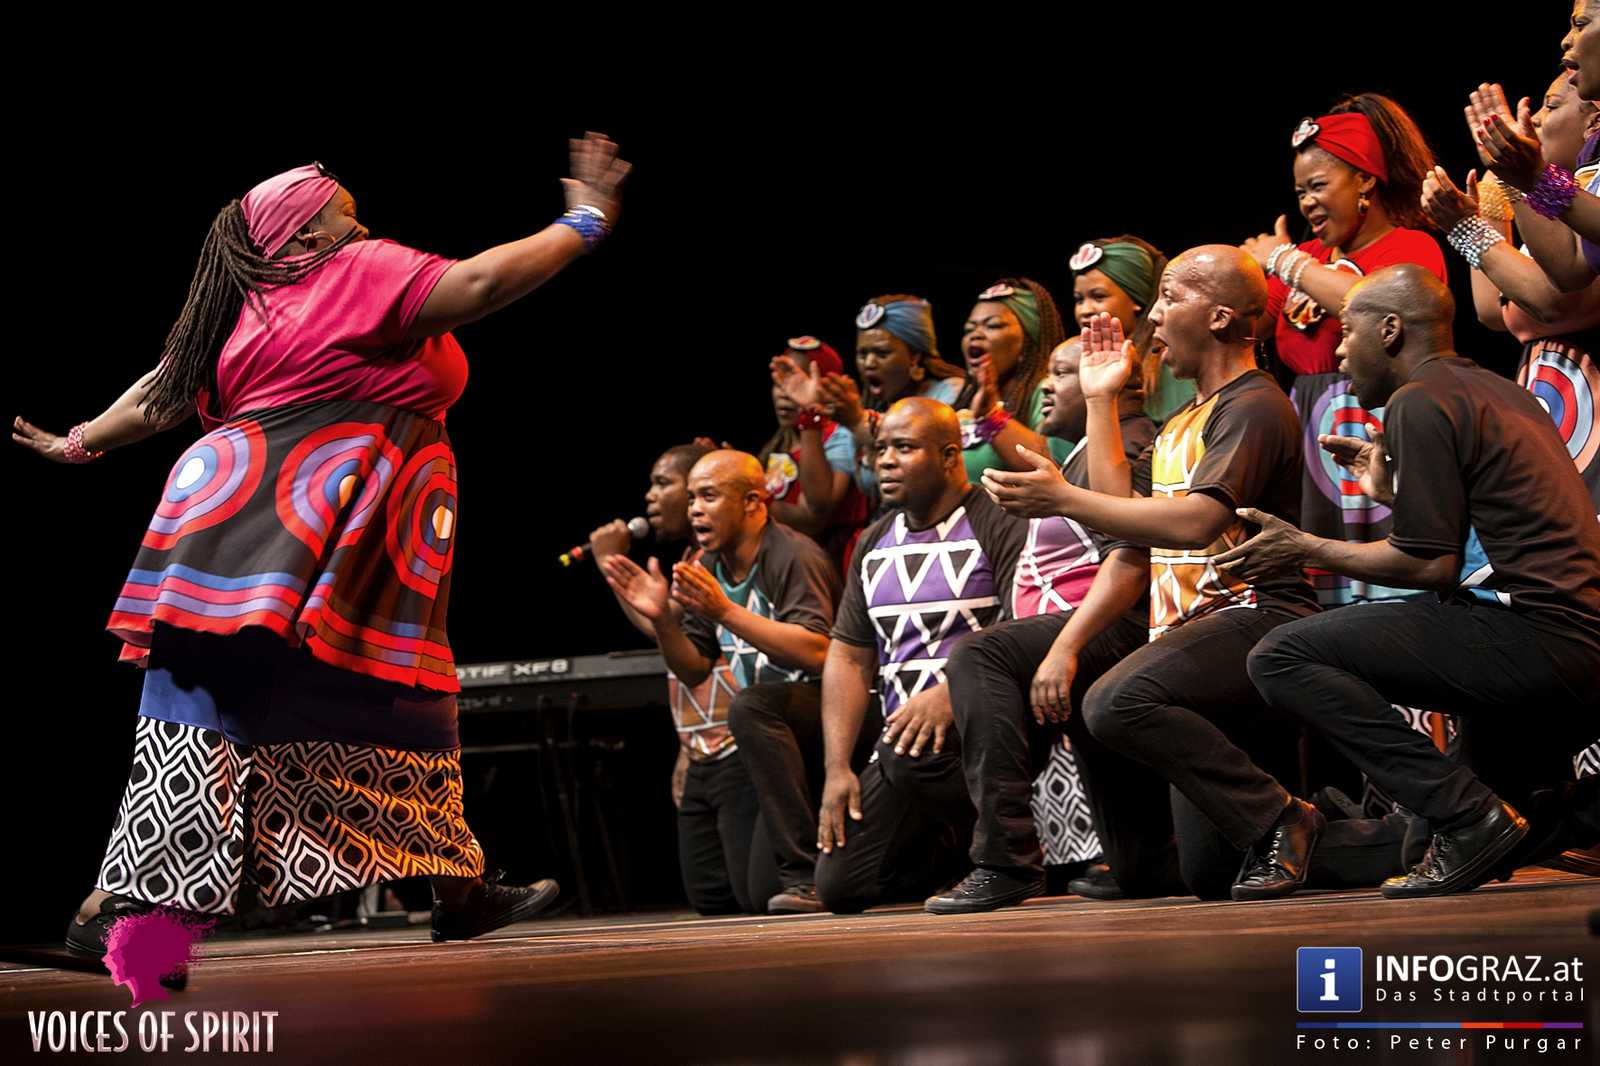 soweto gospel choir internationales chorfestival statdthalle graz voices of spirit eroeffnung festivals 2016 058